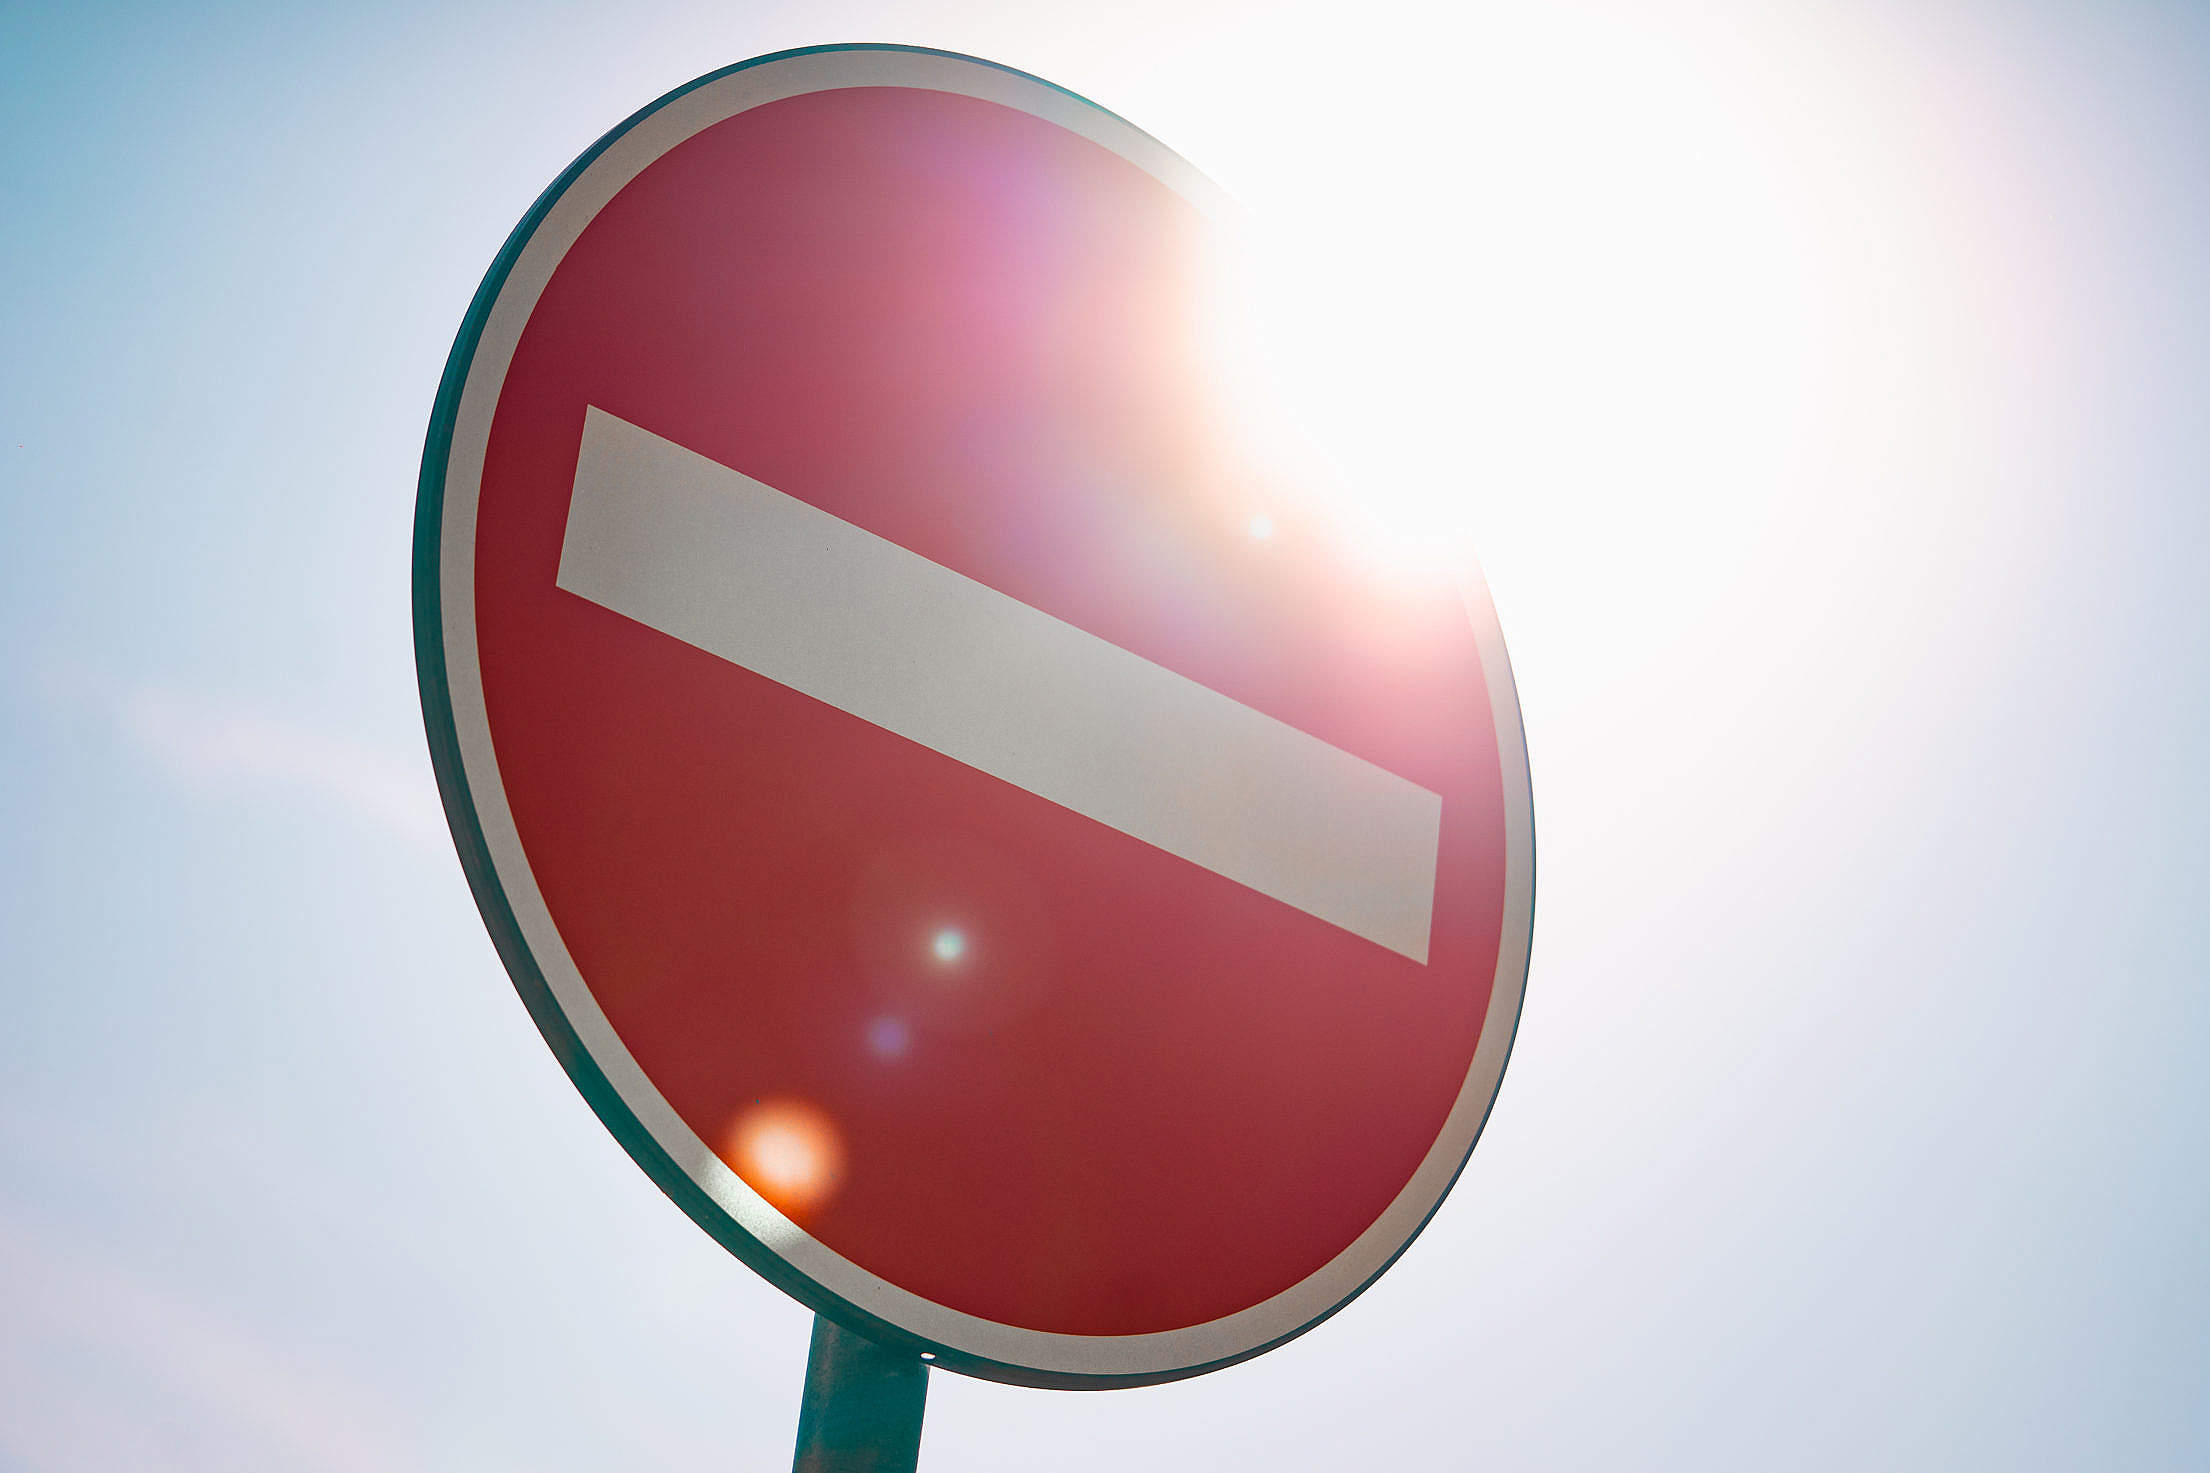 European No Entry For Vehicular Traffic Road Sign Free Stock Photo